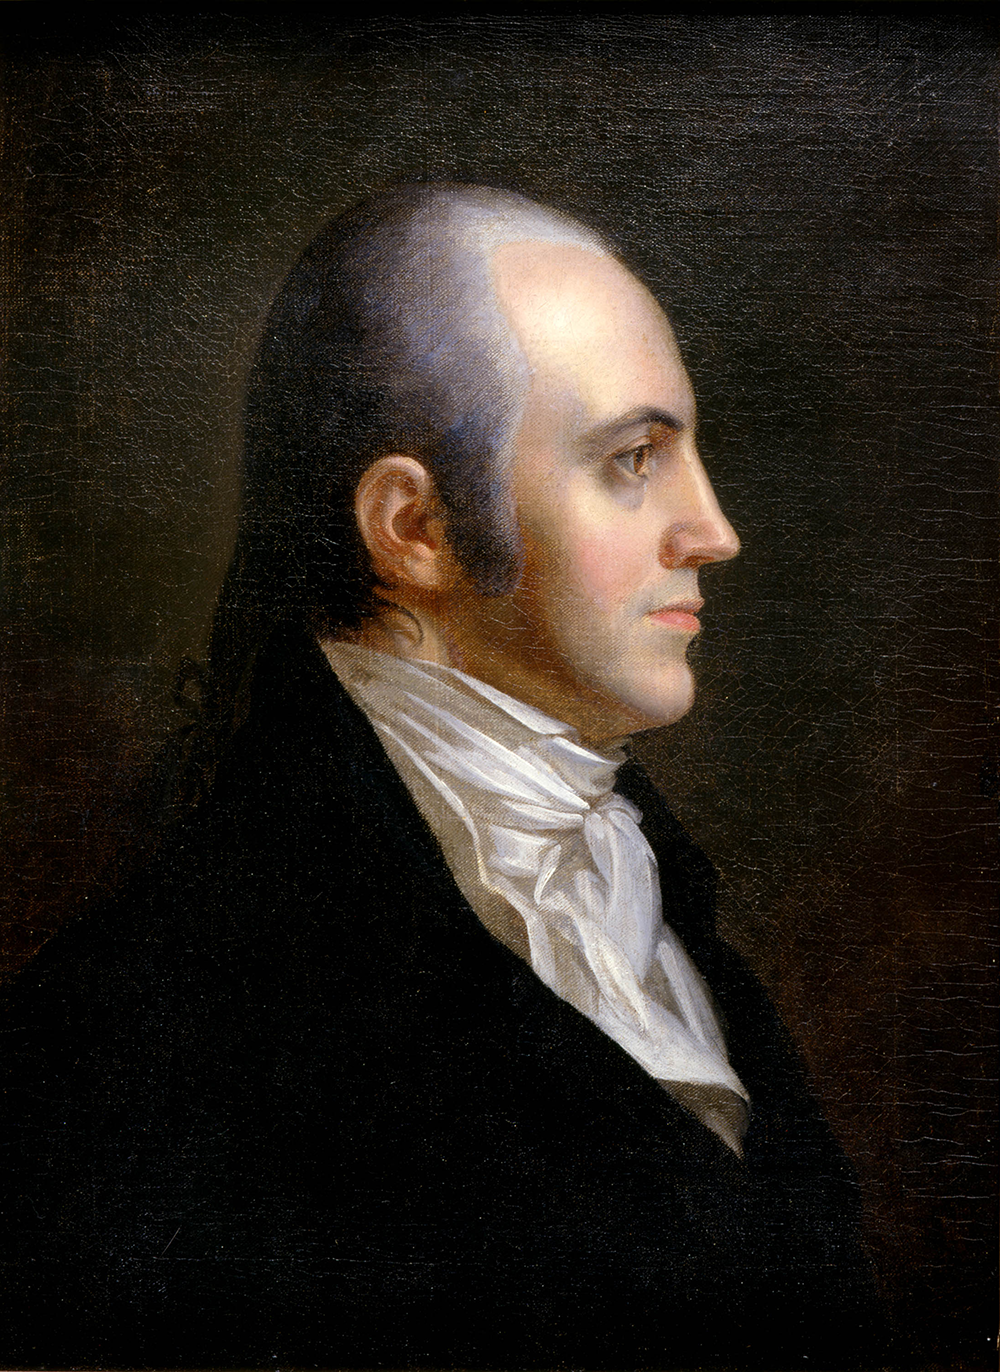 Portrait of Aaron Burr by John Vanderlyn, 1802. New-York Historical Society, Gift of Dr. John E. Stillwell.